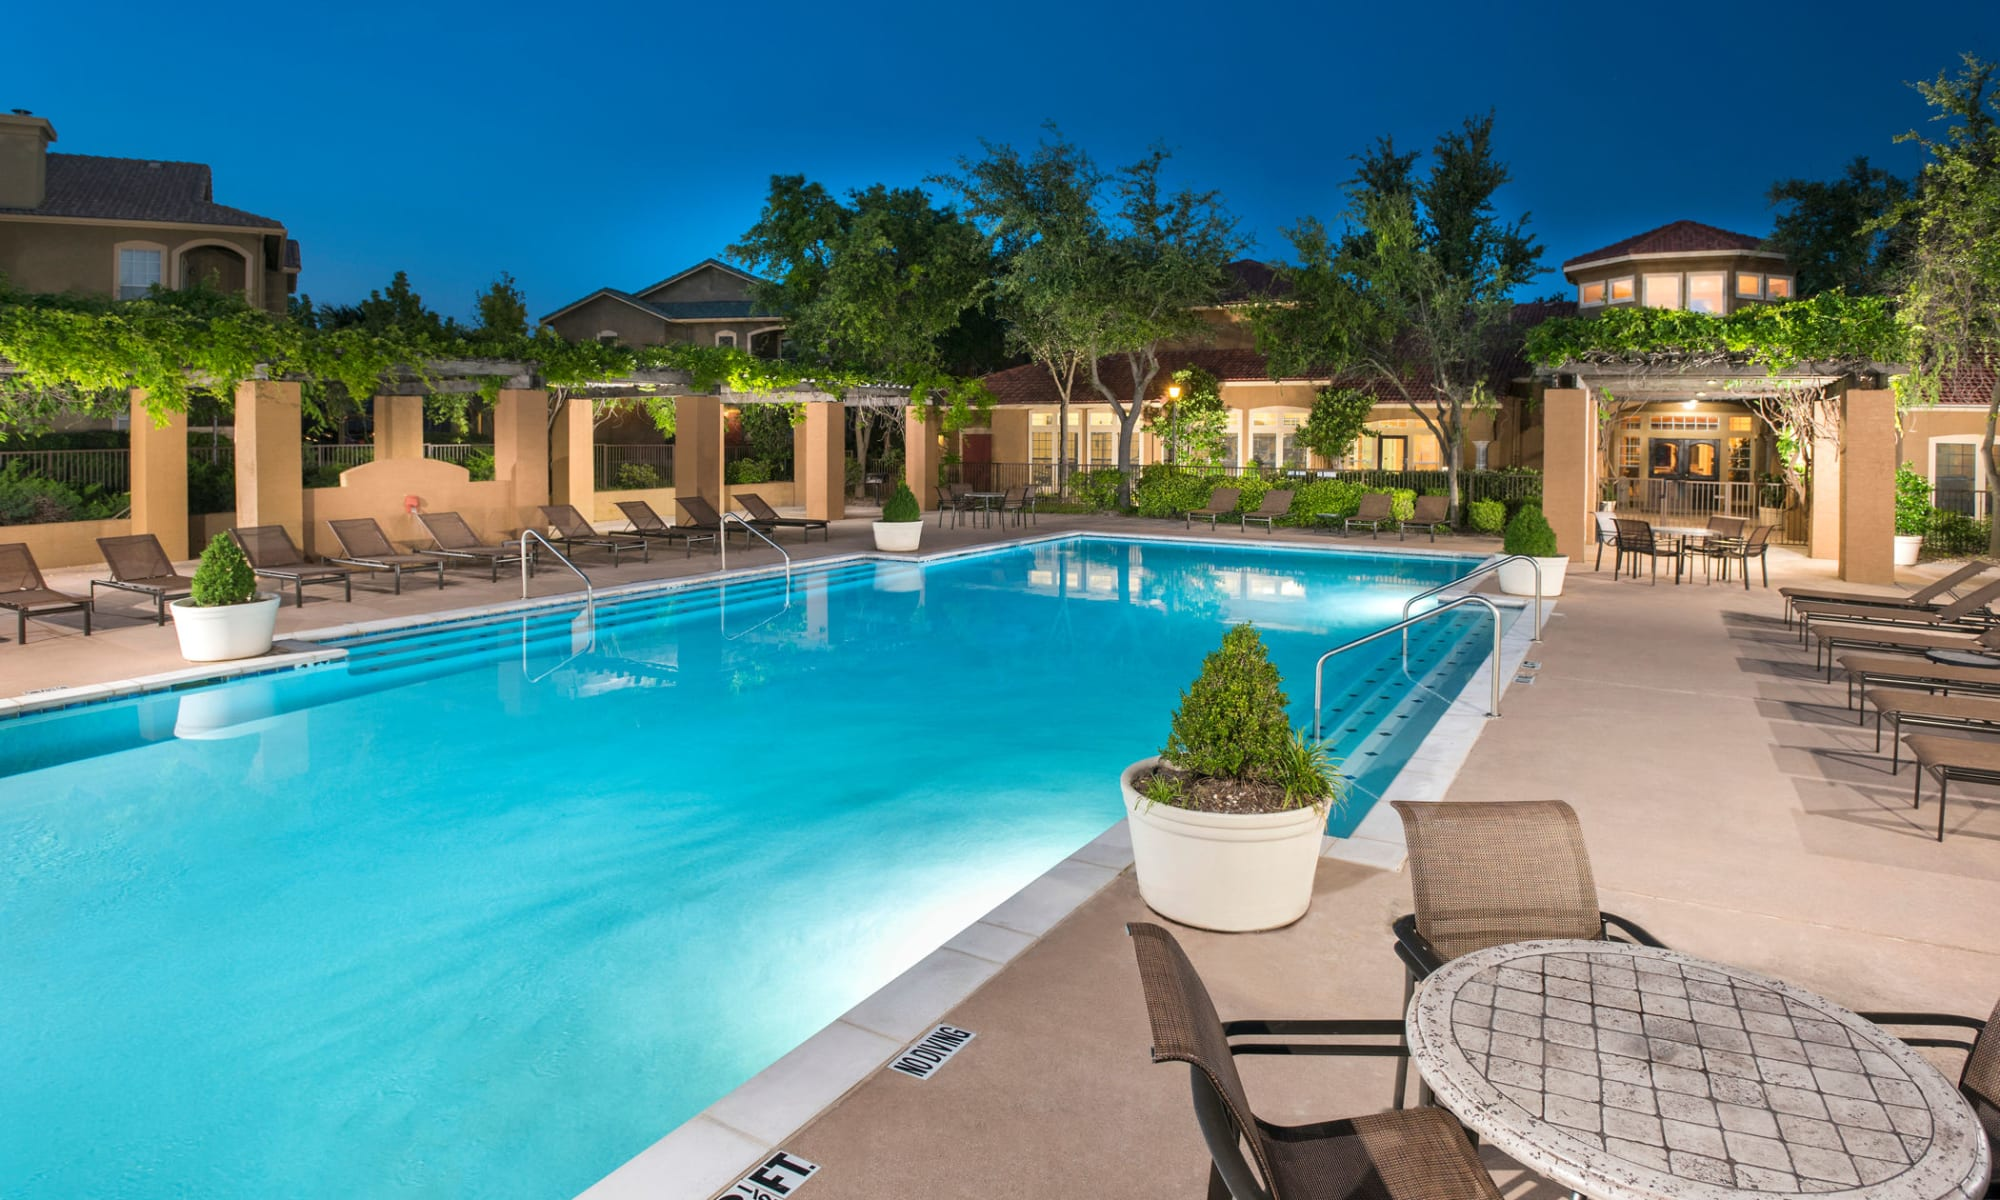 Apartments at Estates on Frankford in Dallas, Texas